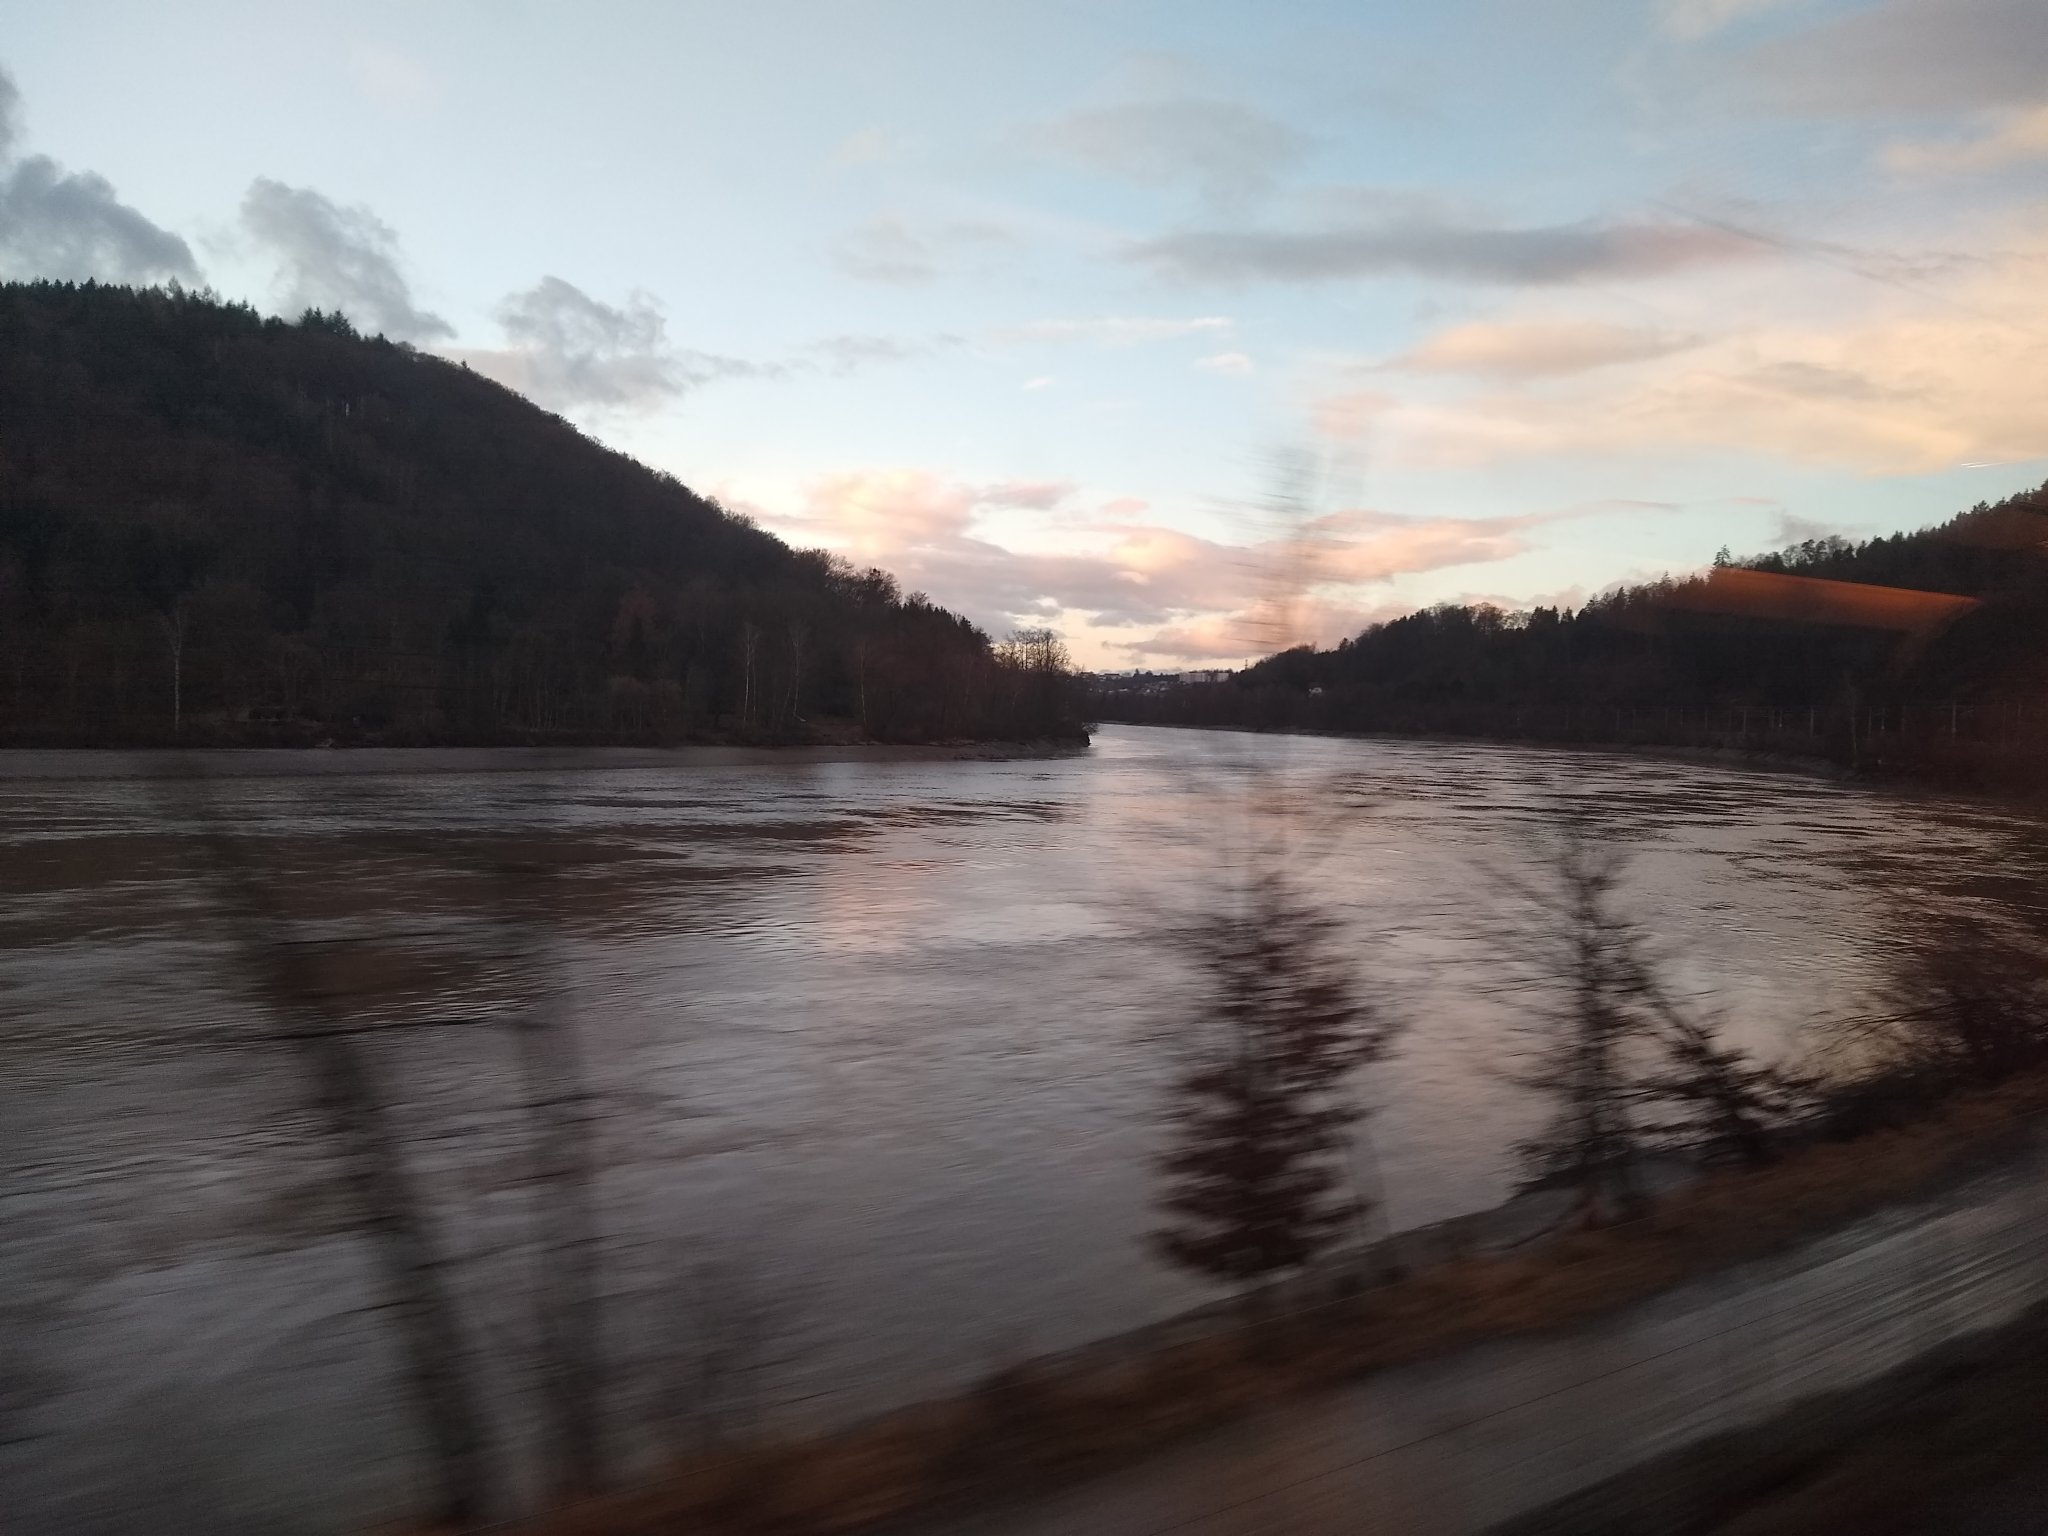 The view out of the window: going along the river from Passau to Linz